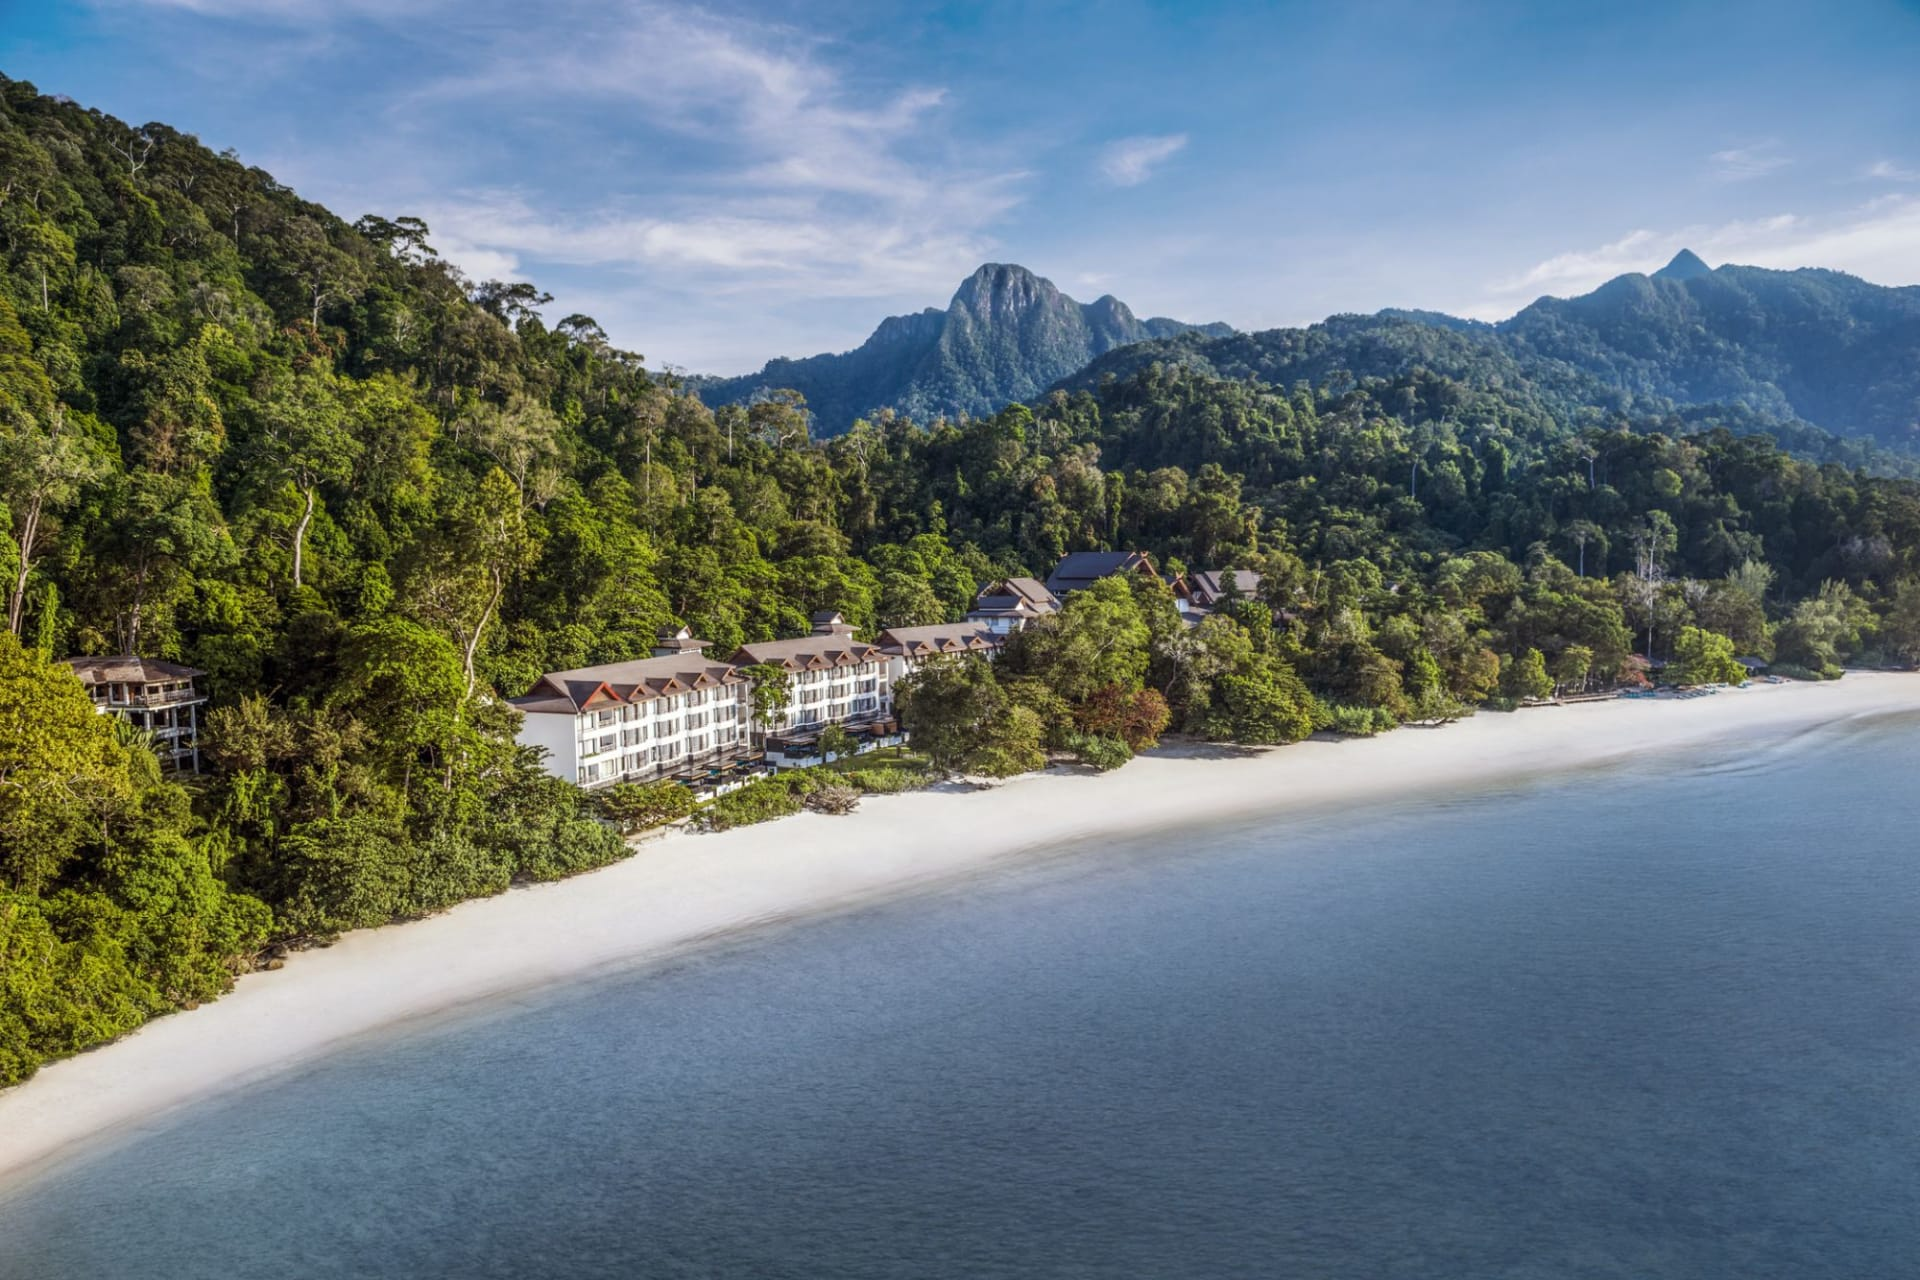 location: The Andaman uniquely set in the rainforest between the Mat Cincang mountain